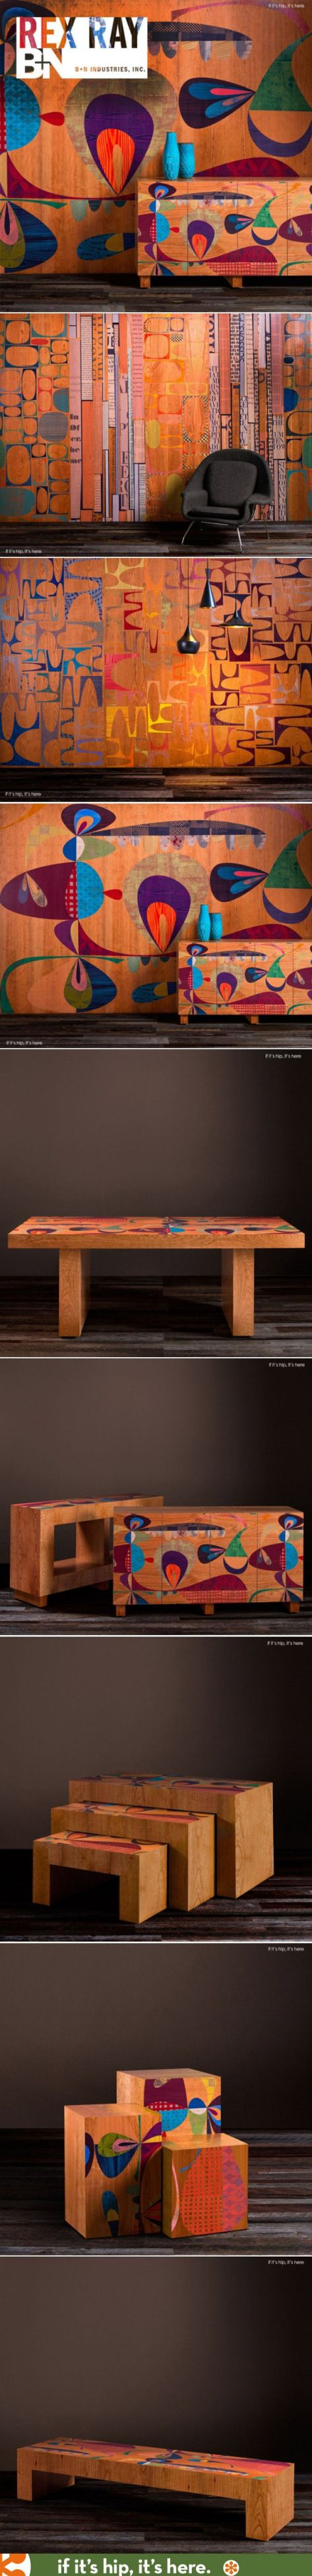 High End Art Licensing: Art on Wood Furniture, Wall Panels